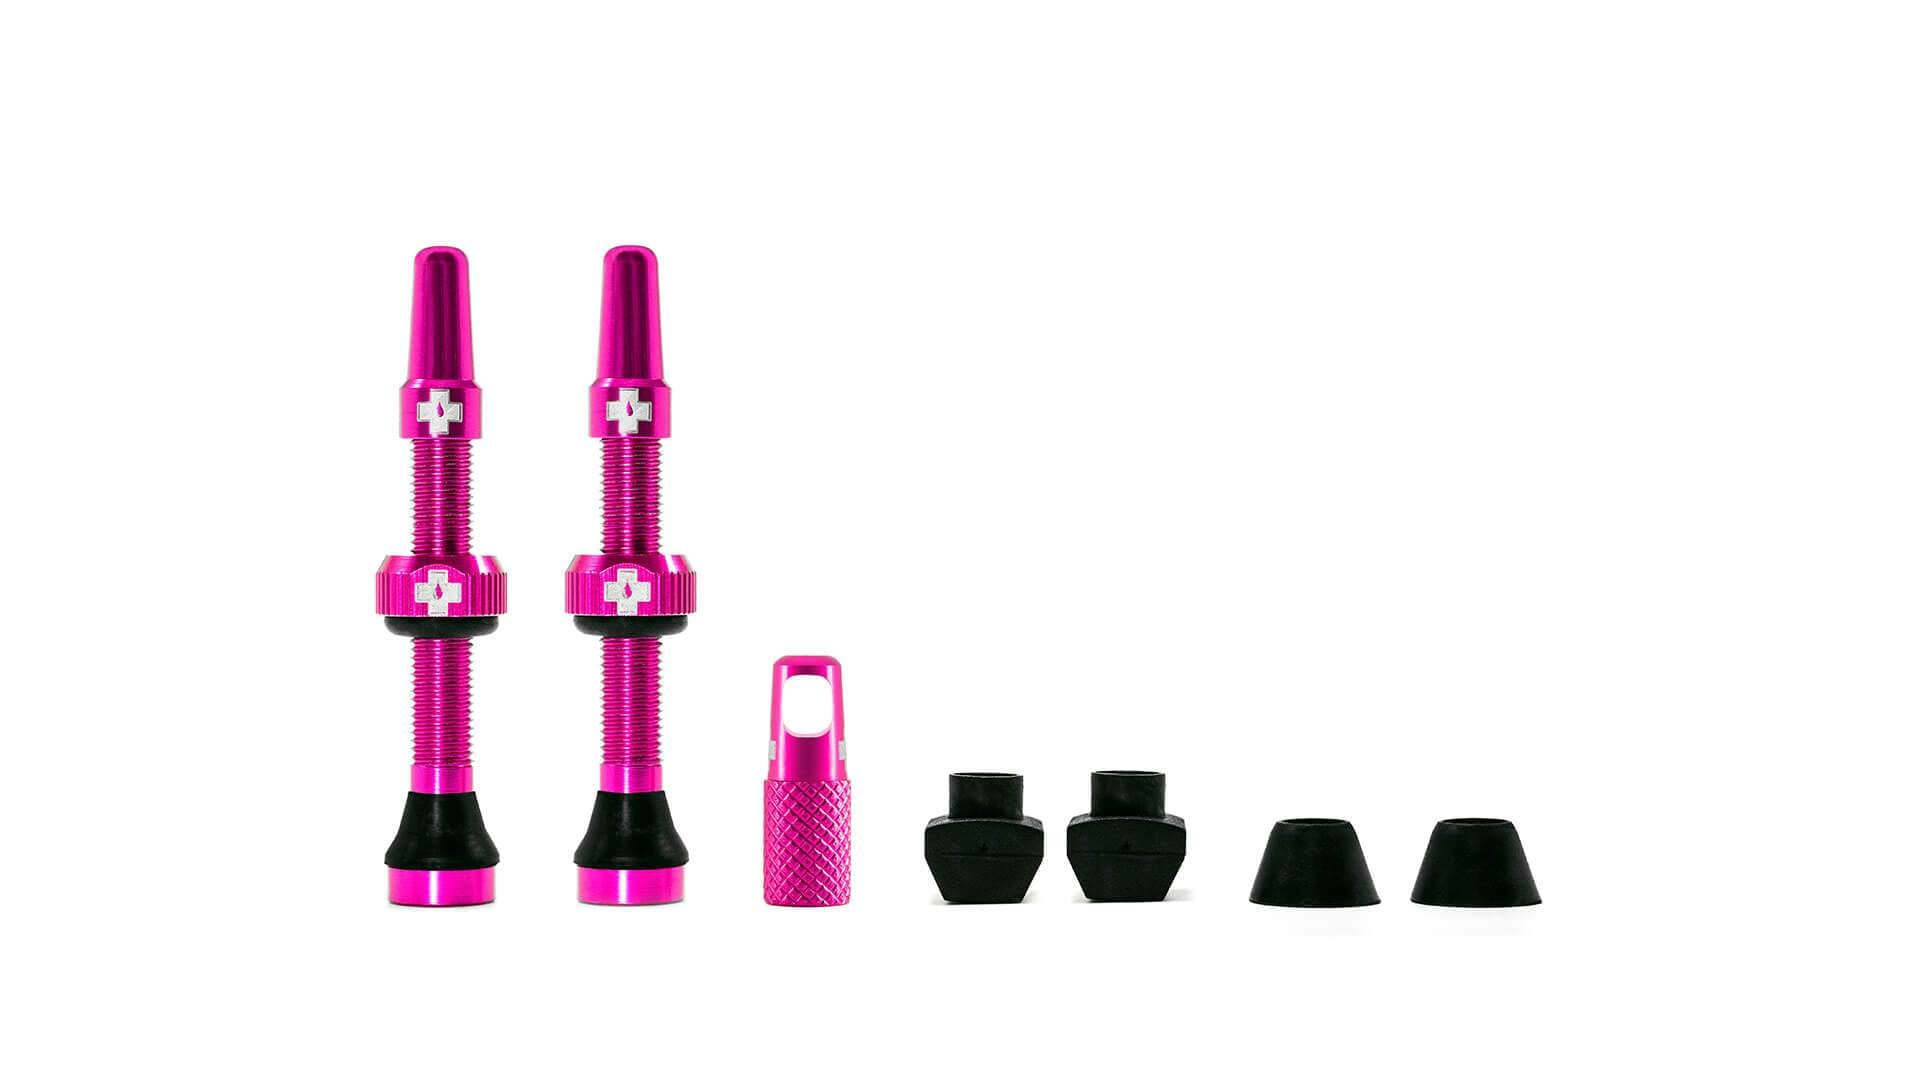 Muc-Off Ventil, Tubeless Valve Kit, Pink